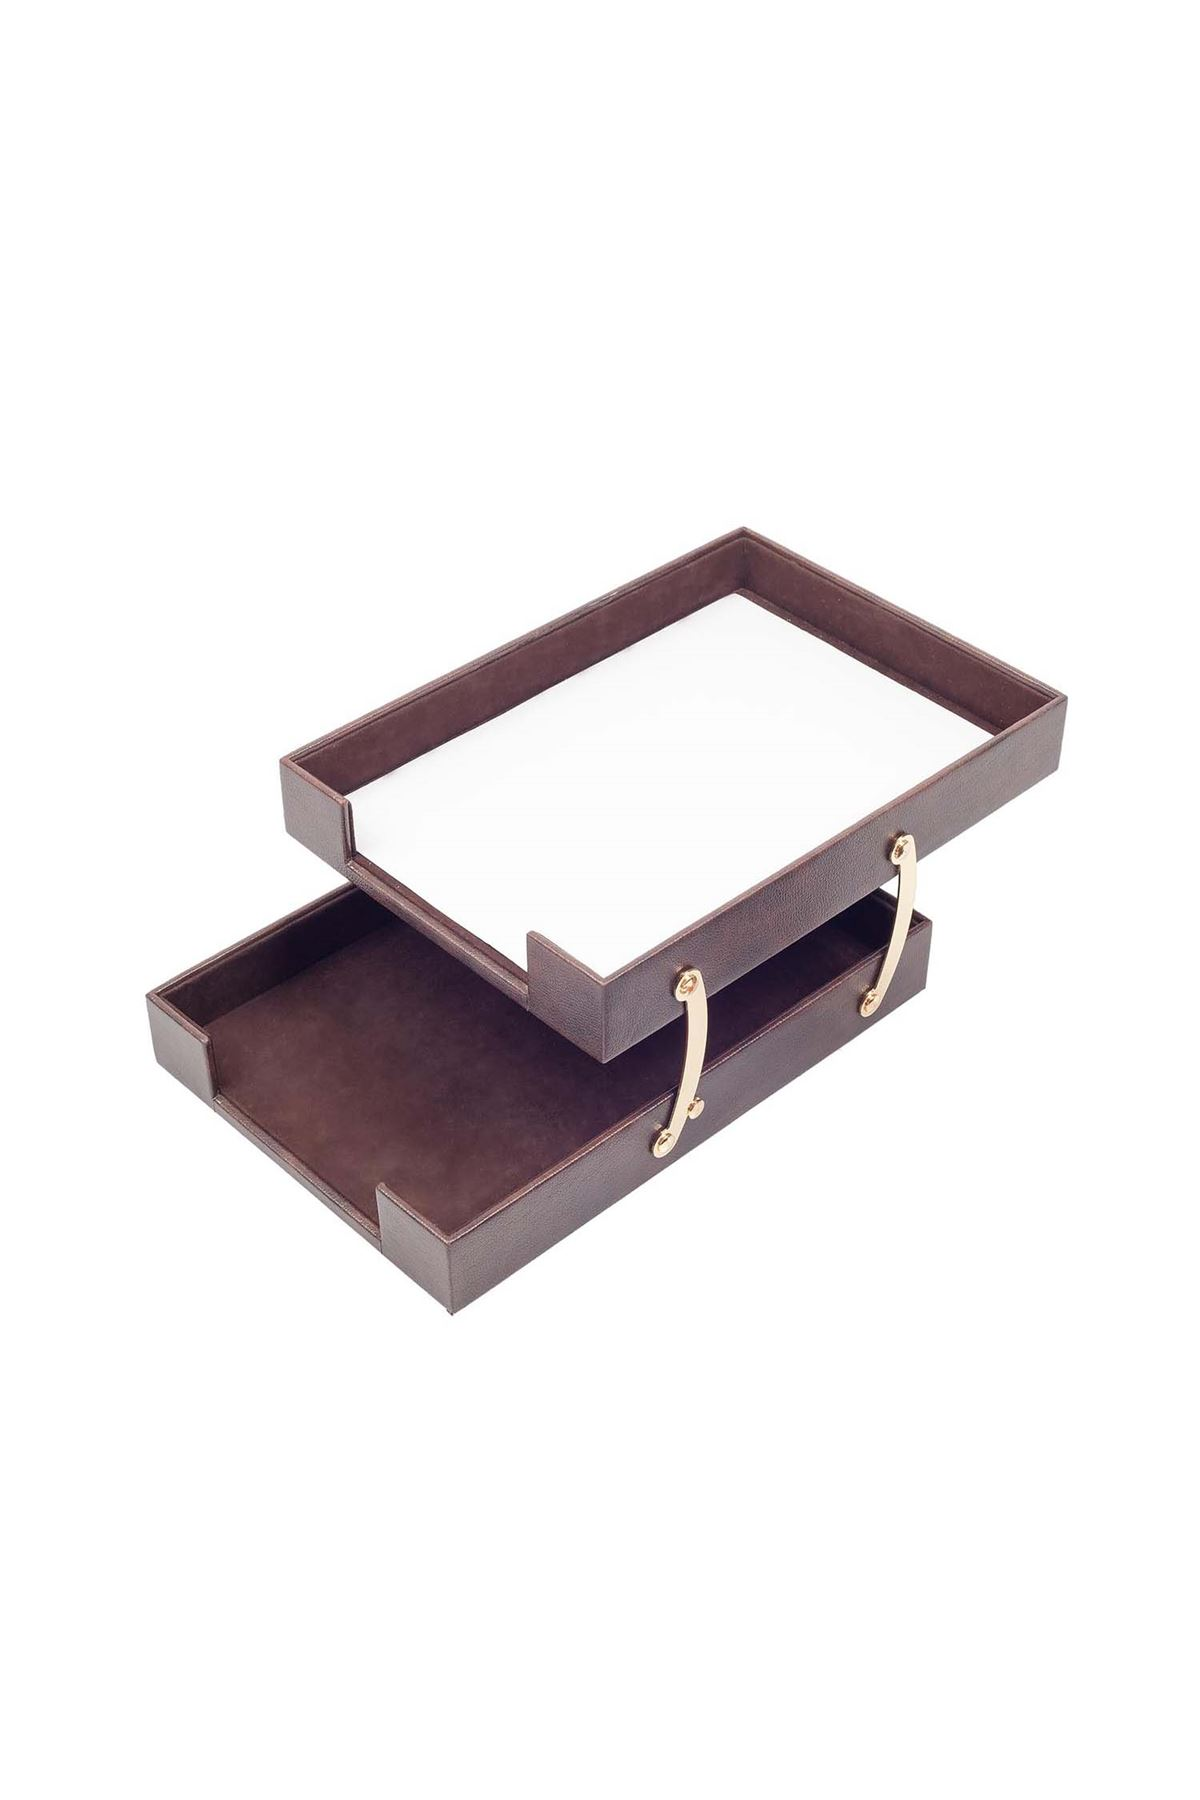 Double Document Tray Brown| Leather Document Organizer | Leather Foldable Tray | Leather Organizer | Double Document Shelves